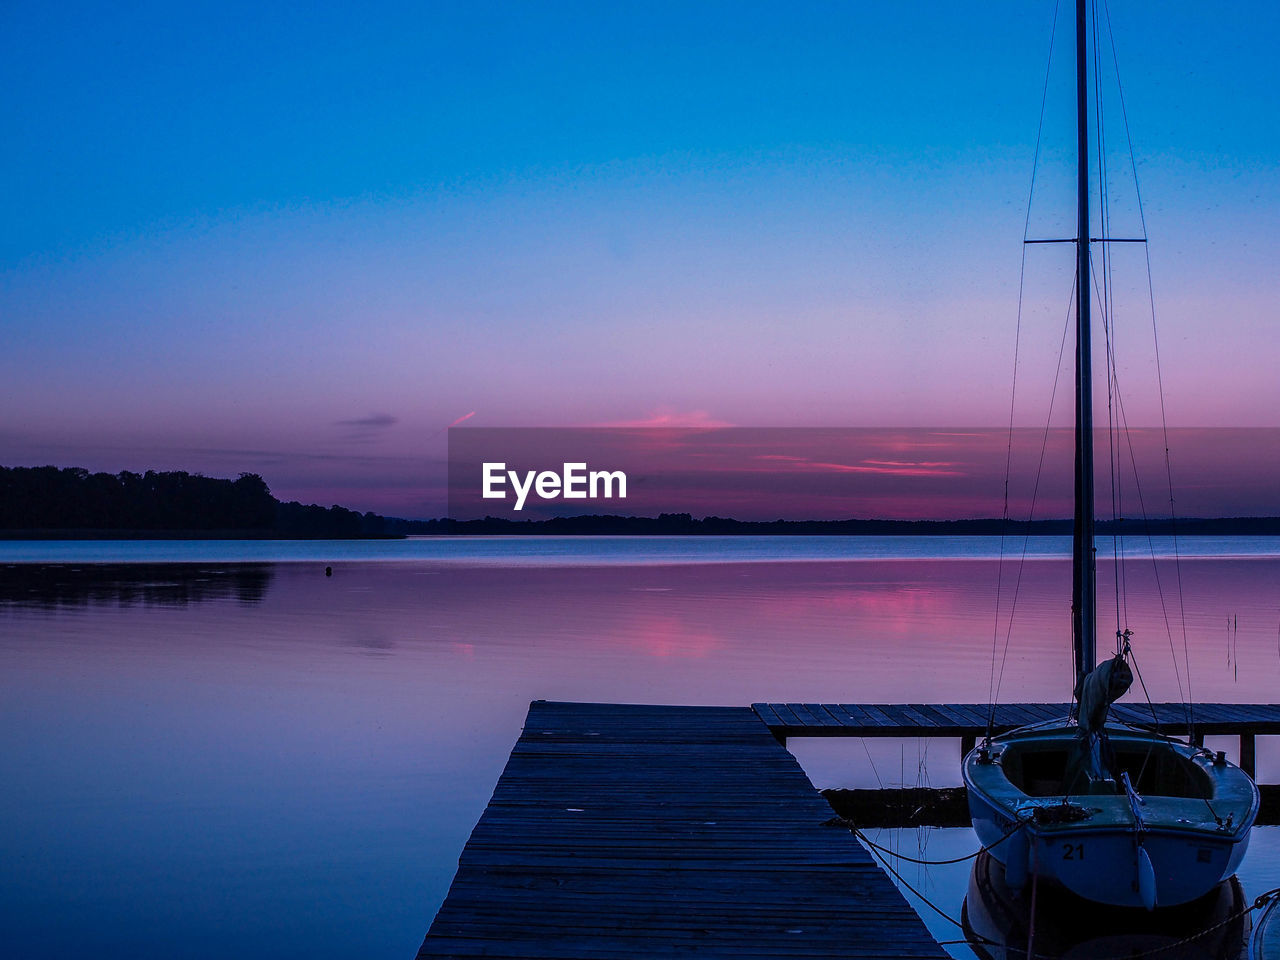 water, sky, nautical vessel, beauty in nature, scenics - nature, sunset, reflection, tranquility, tranquil scene, transportation, nature, pier, mode of transportation, moored, sea, wood - material, no people, dusk, outdoors, sailboat